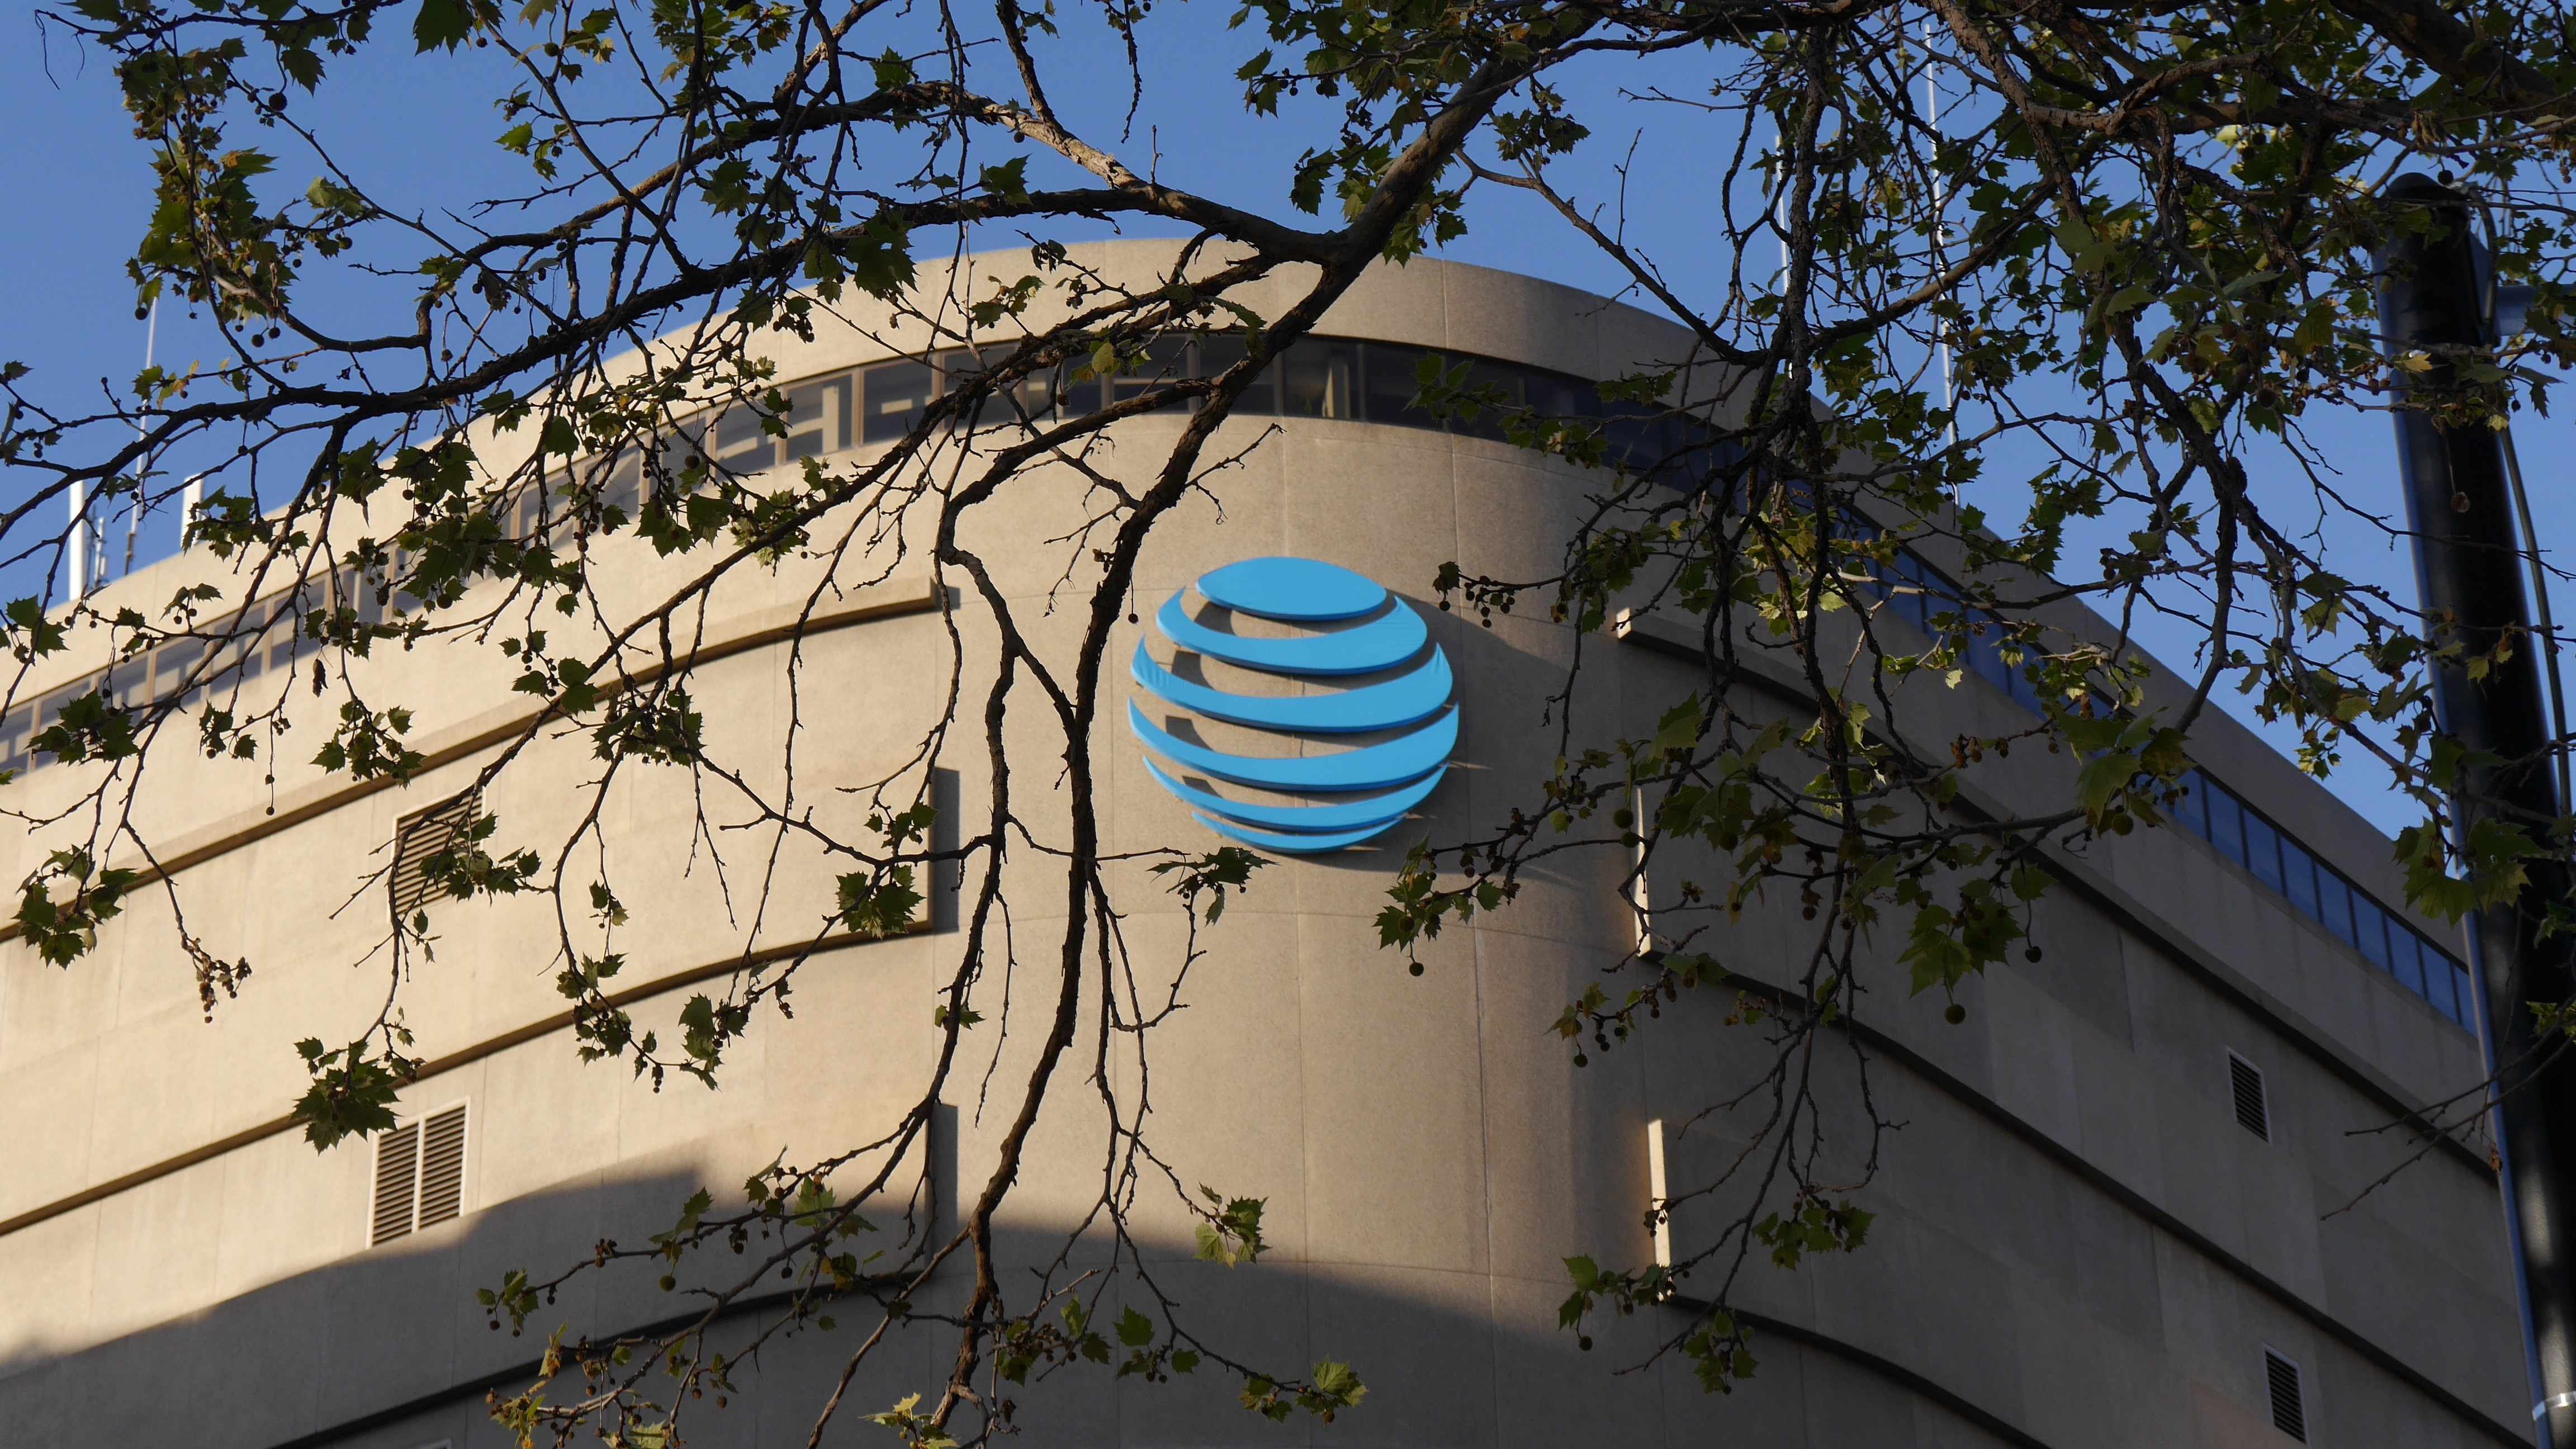 Power switch fire, service outage at AT&T data center may